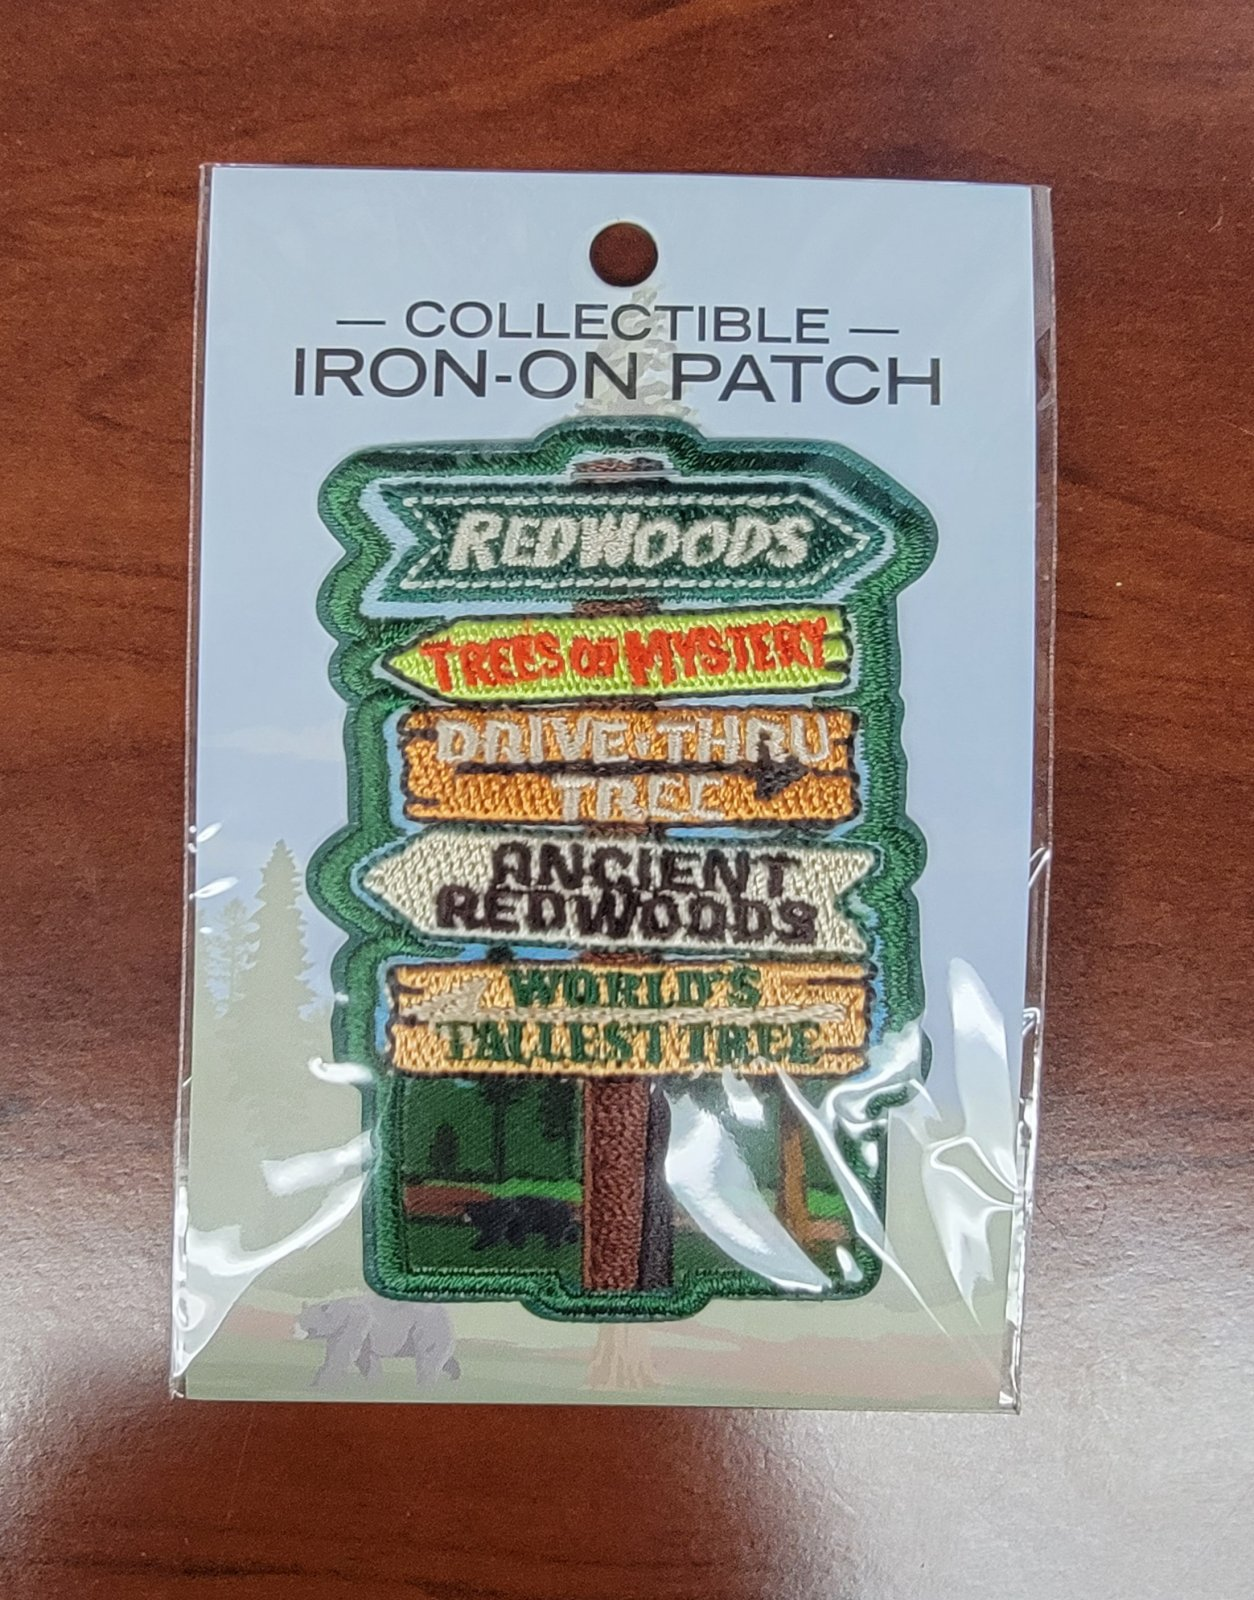 Collectible Iron-on Patch, Redwoods / California